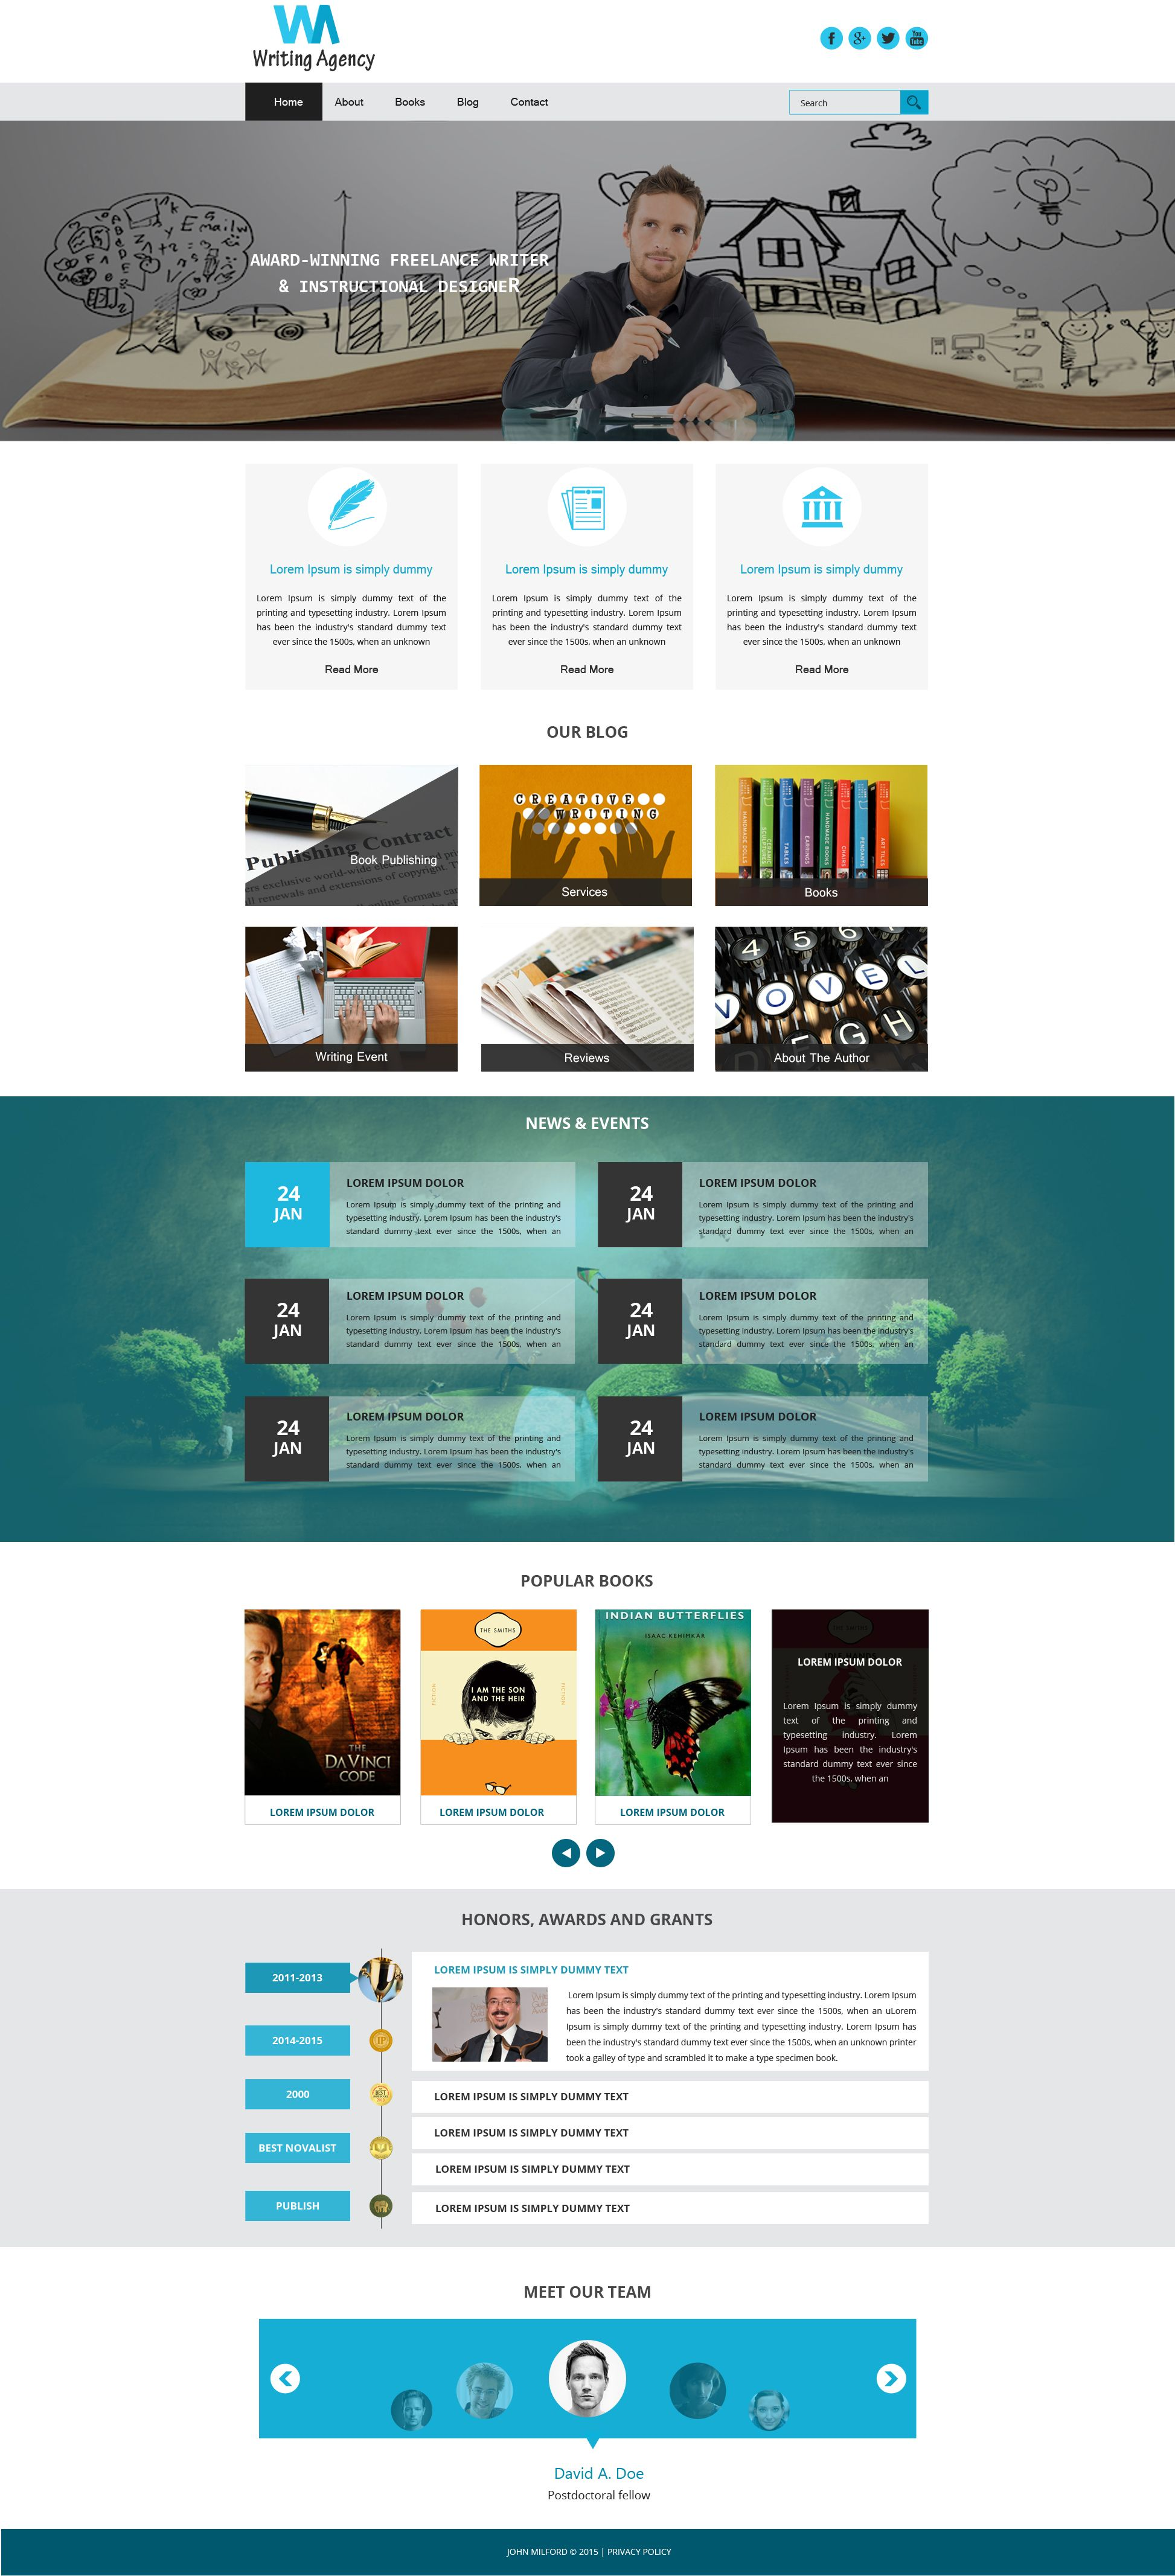 Sell365 S Writing Agency Template One Of The Best Website Builder In India Design And Cu Free Website Templates Ecommerce Website Template Ecommerce Template